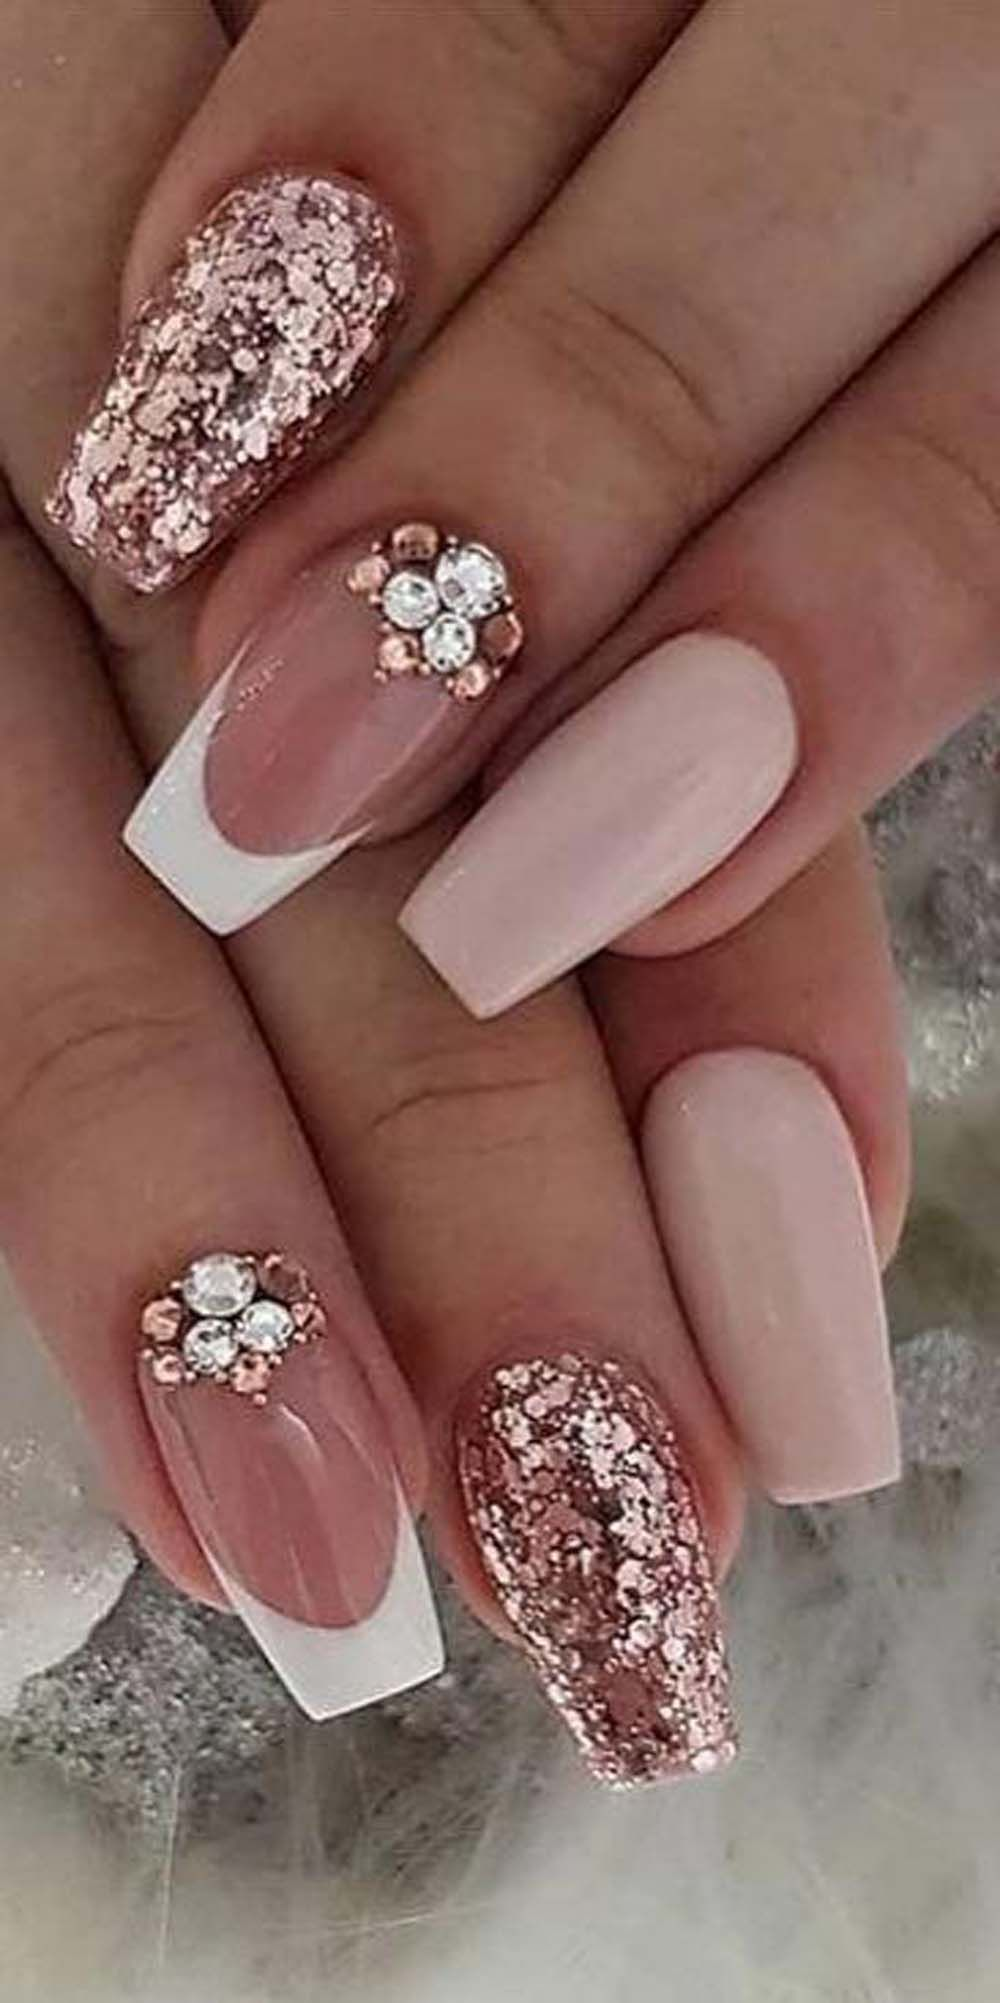 9 Fantastic And Impressive Bling Nails With Glitters: Only For You